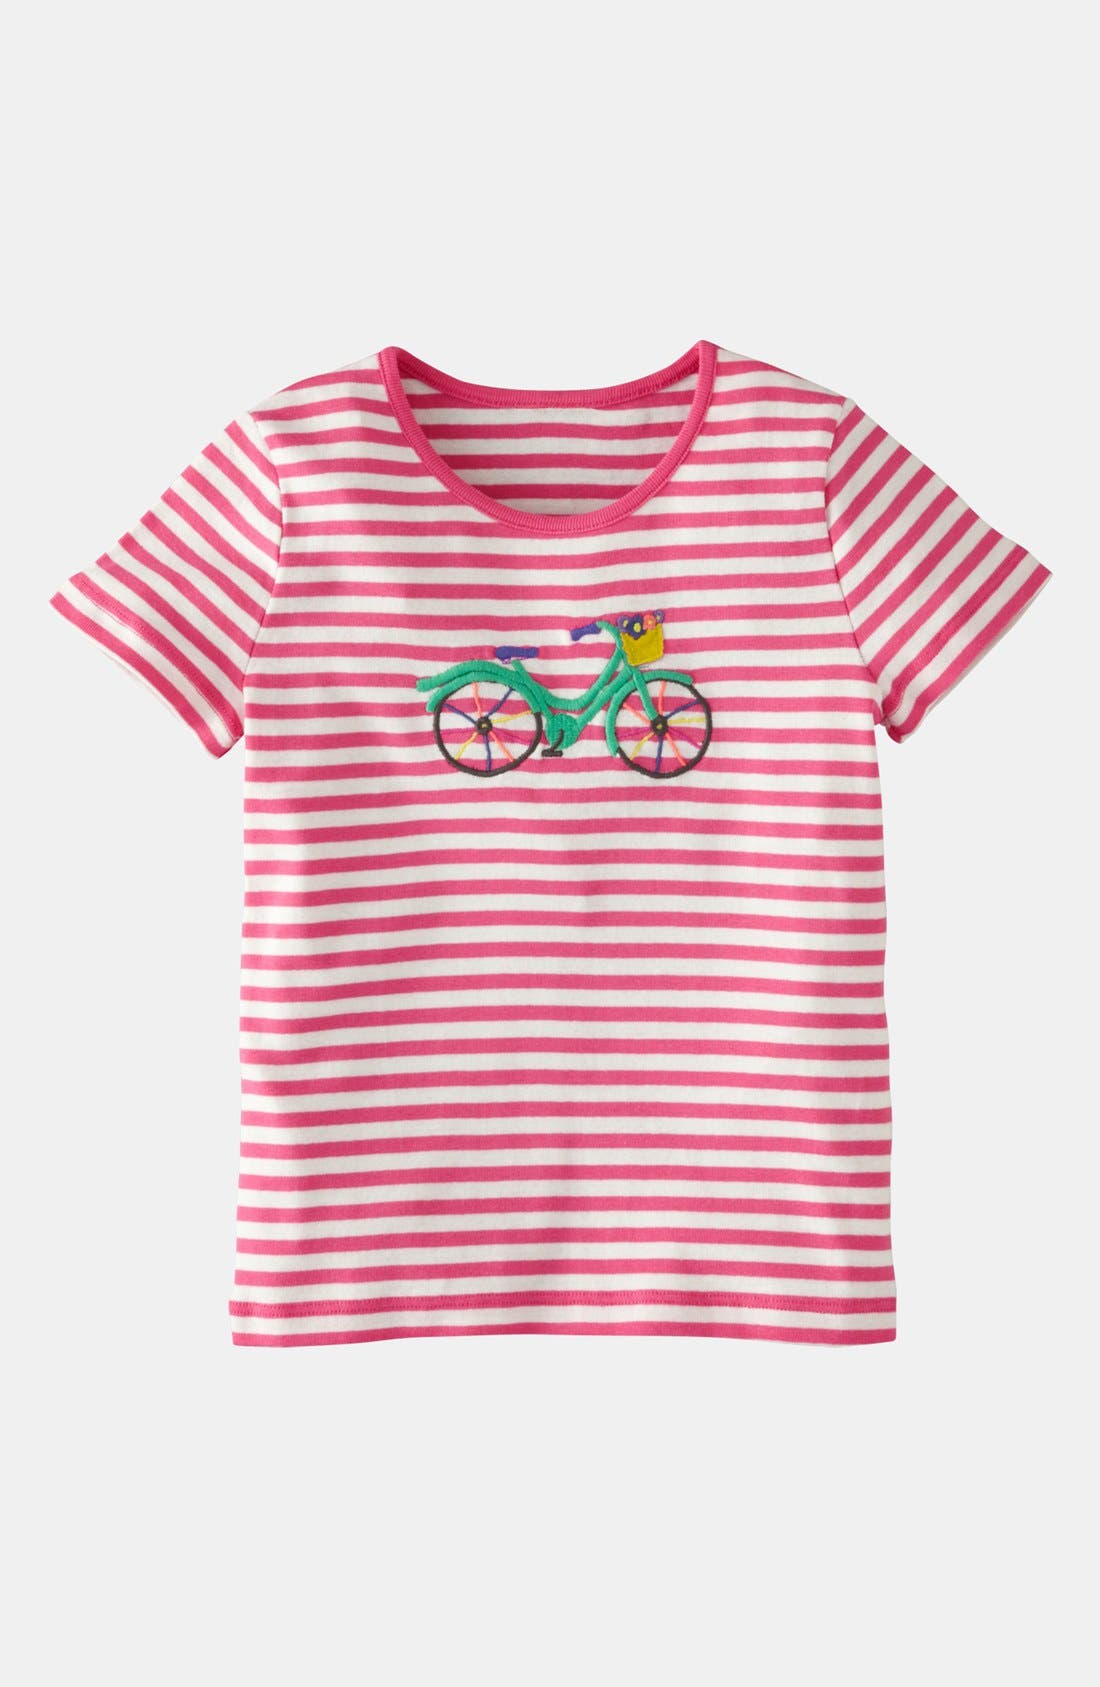 Alternate Image 1 Selected - Mini Boden Appliqué Tee (Toddler)